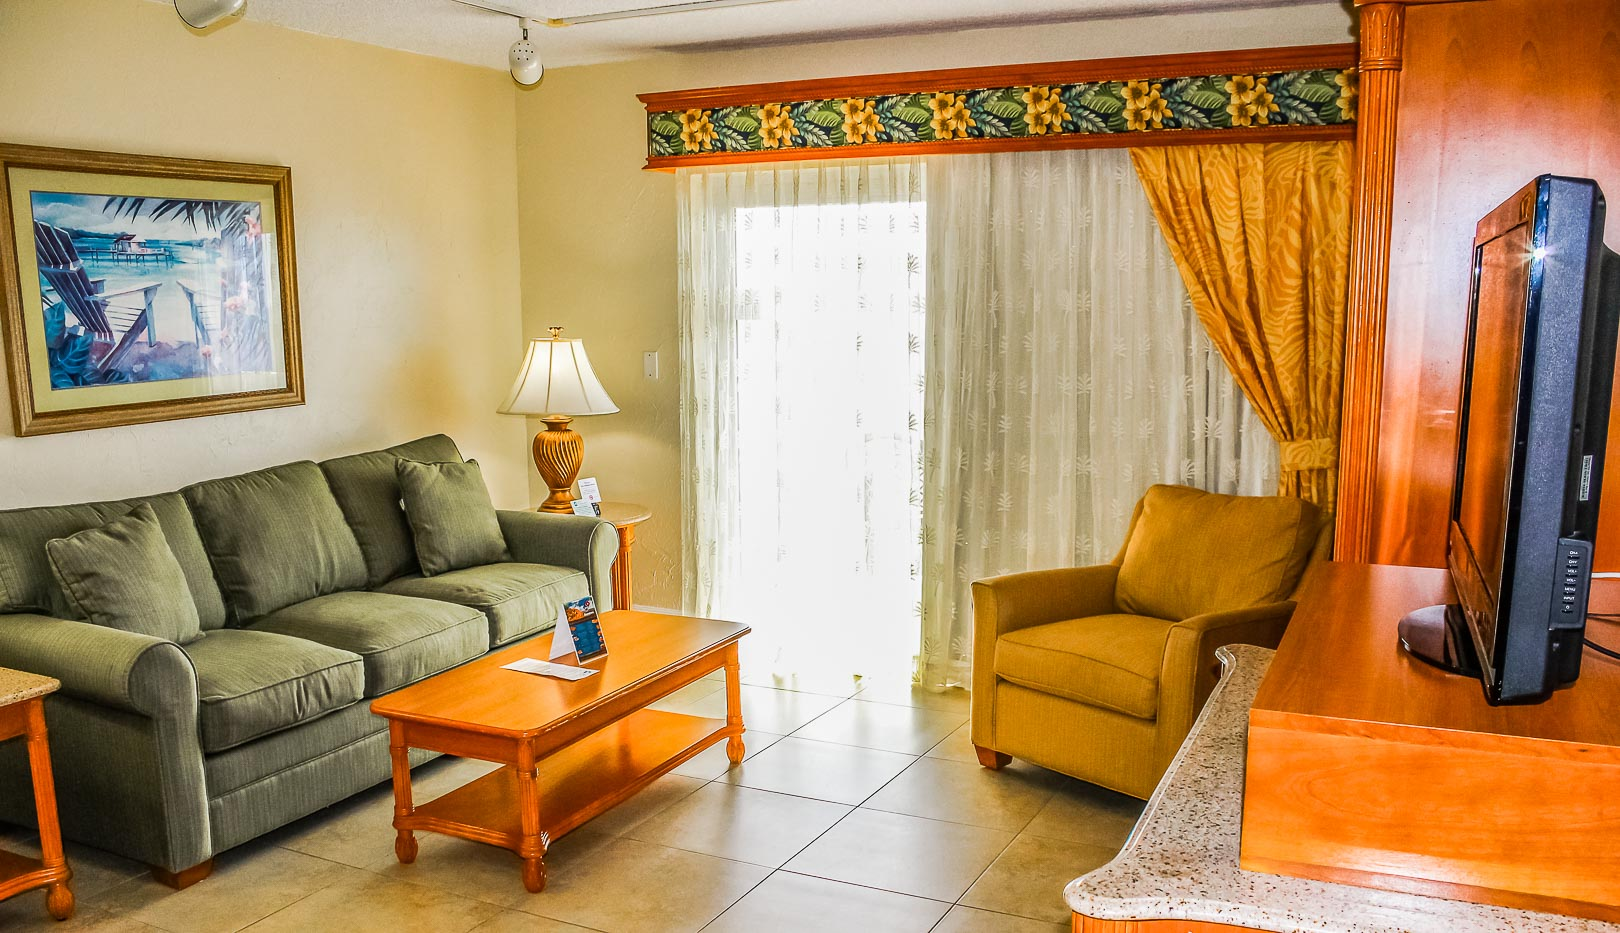 A vibrant living room at VRI's Ft. Lauderdale Beach Resort in Florida.